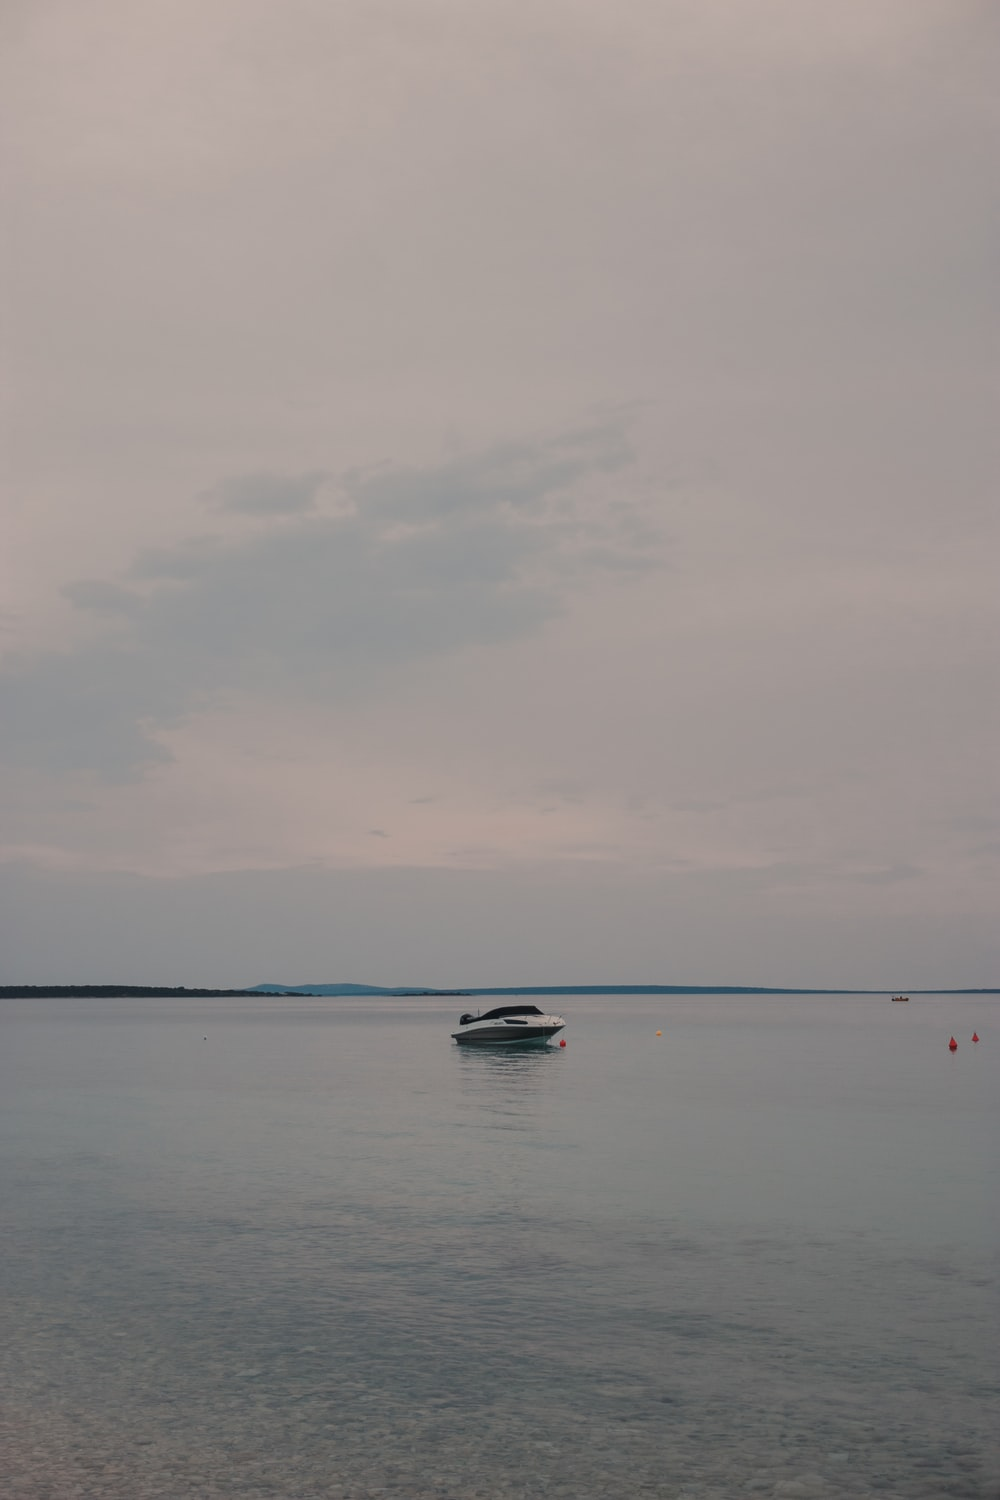 white boat on sea under cloudy sky during daytime